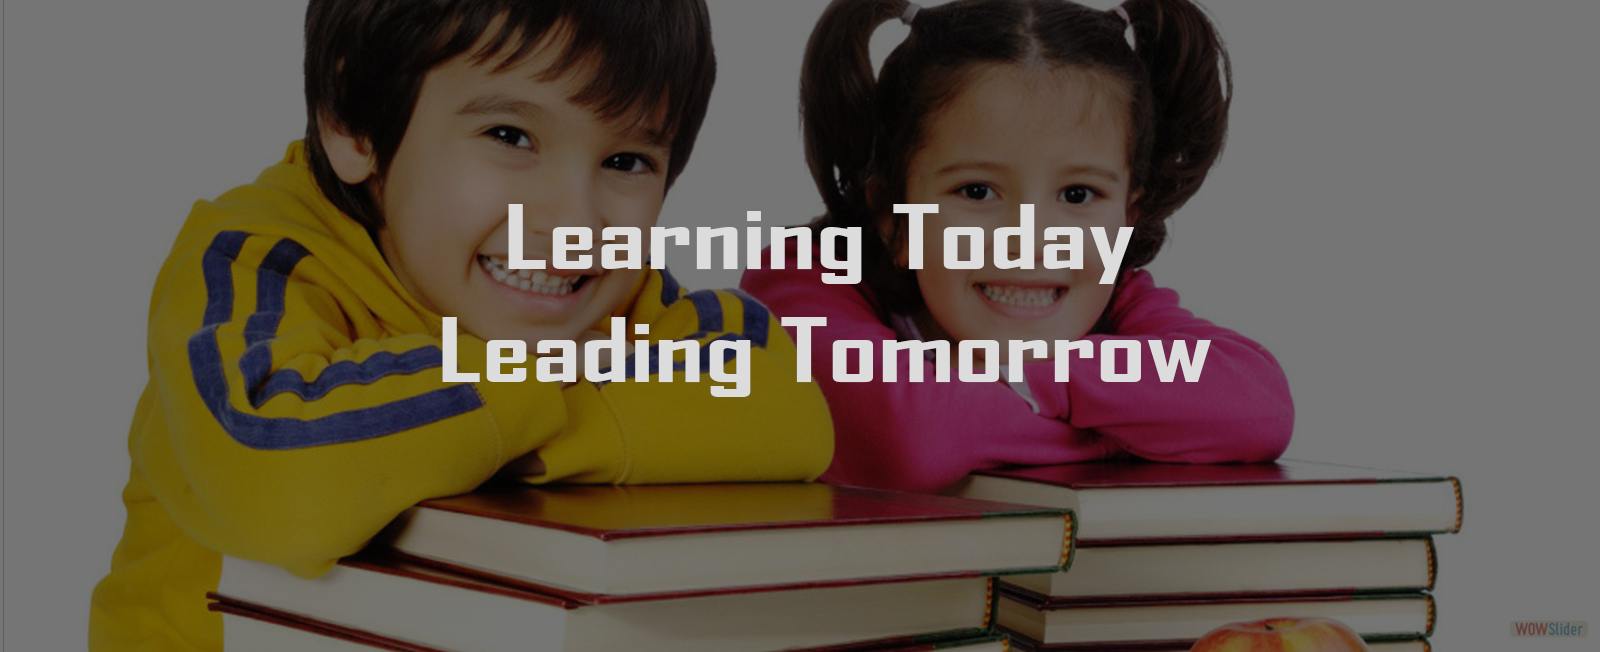 Ptc Elite_Learning today lead tomorrow